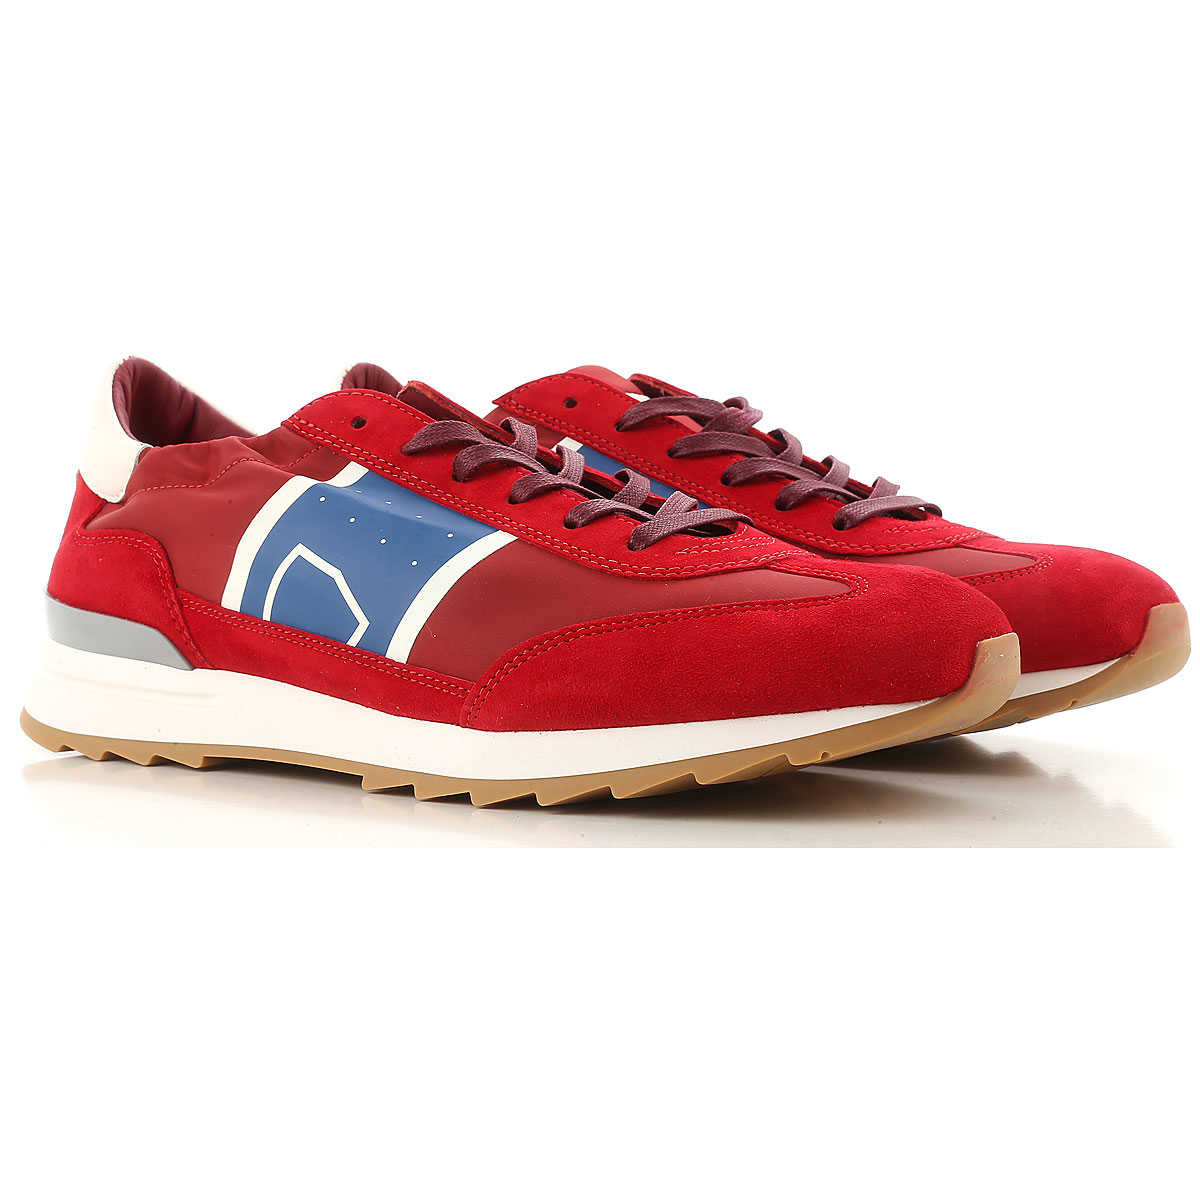 Philippe Model Mens Shoes On Sale in Outlet